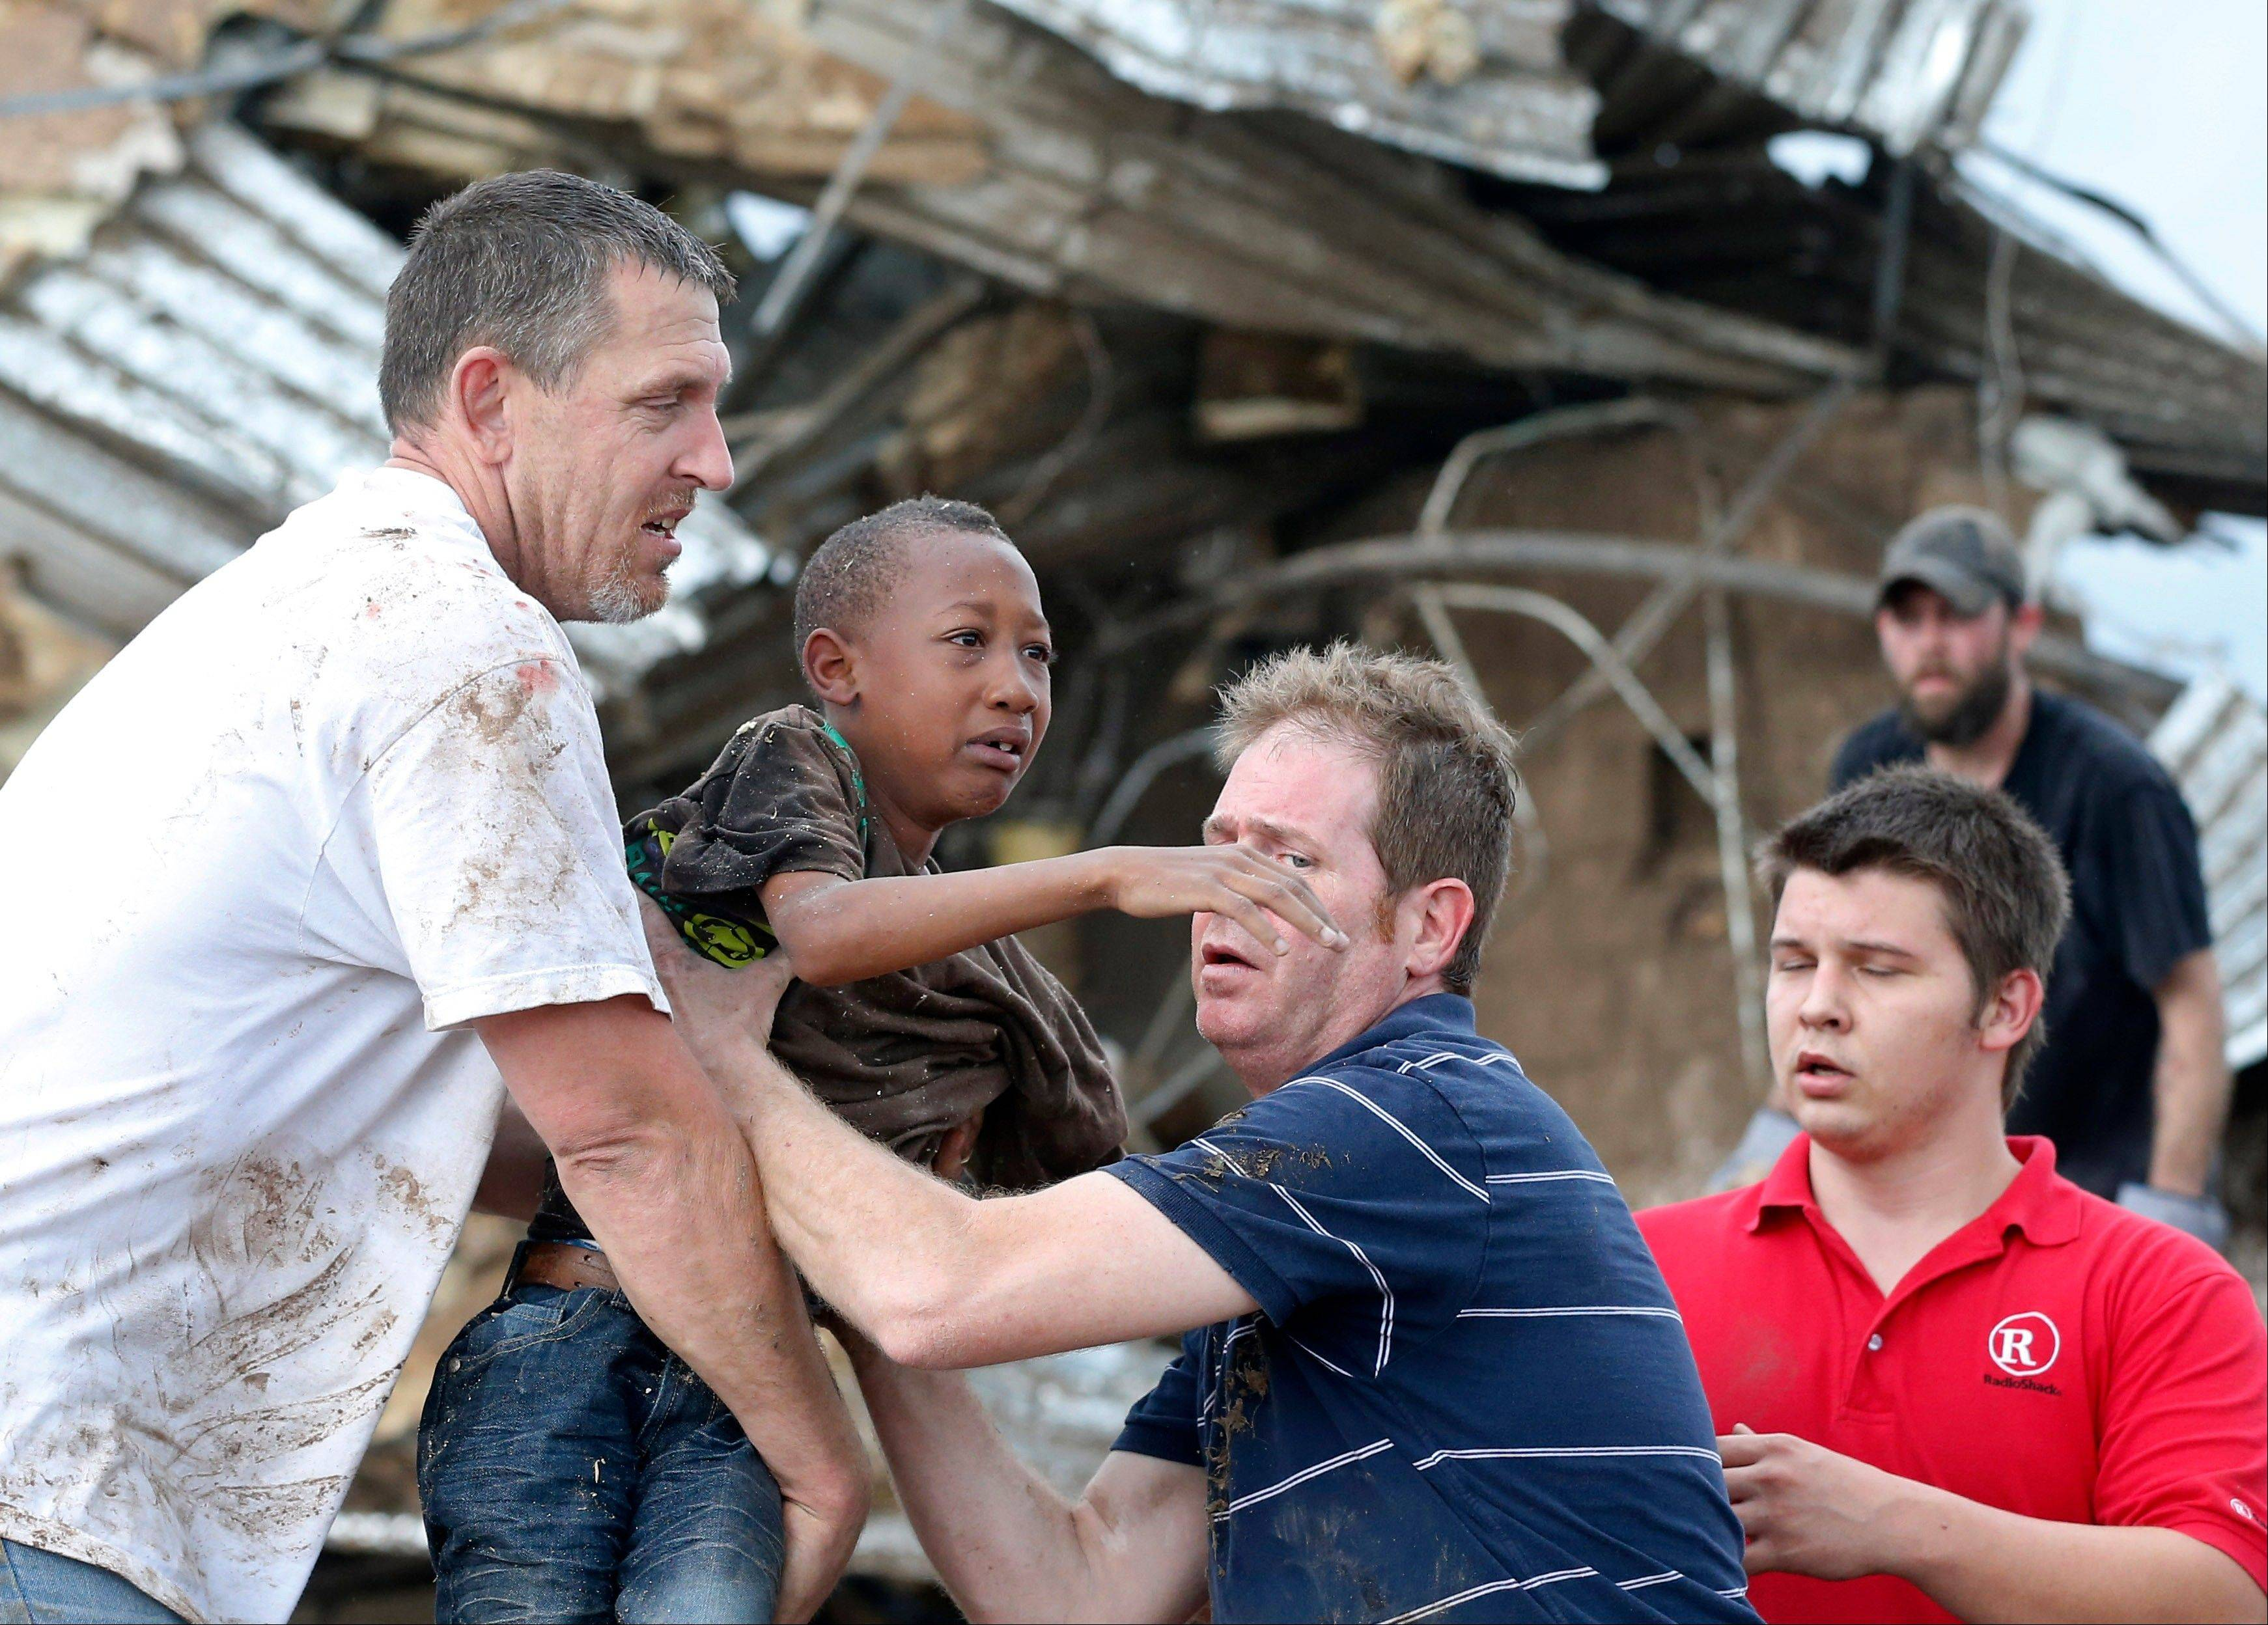 Cameron Richardson, center, is carried out of the rubble of Plaza Towers Elementary school in Moore, Okla. When school begins again Friday, Aug. 16, 2013, Plaza Towers students will go to a renovated building on the junior high campus.